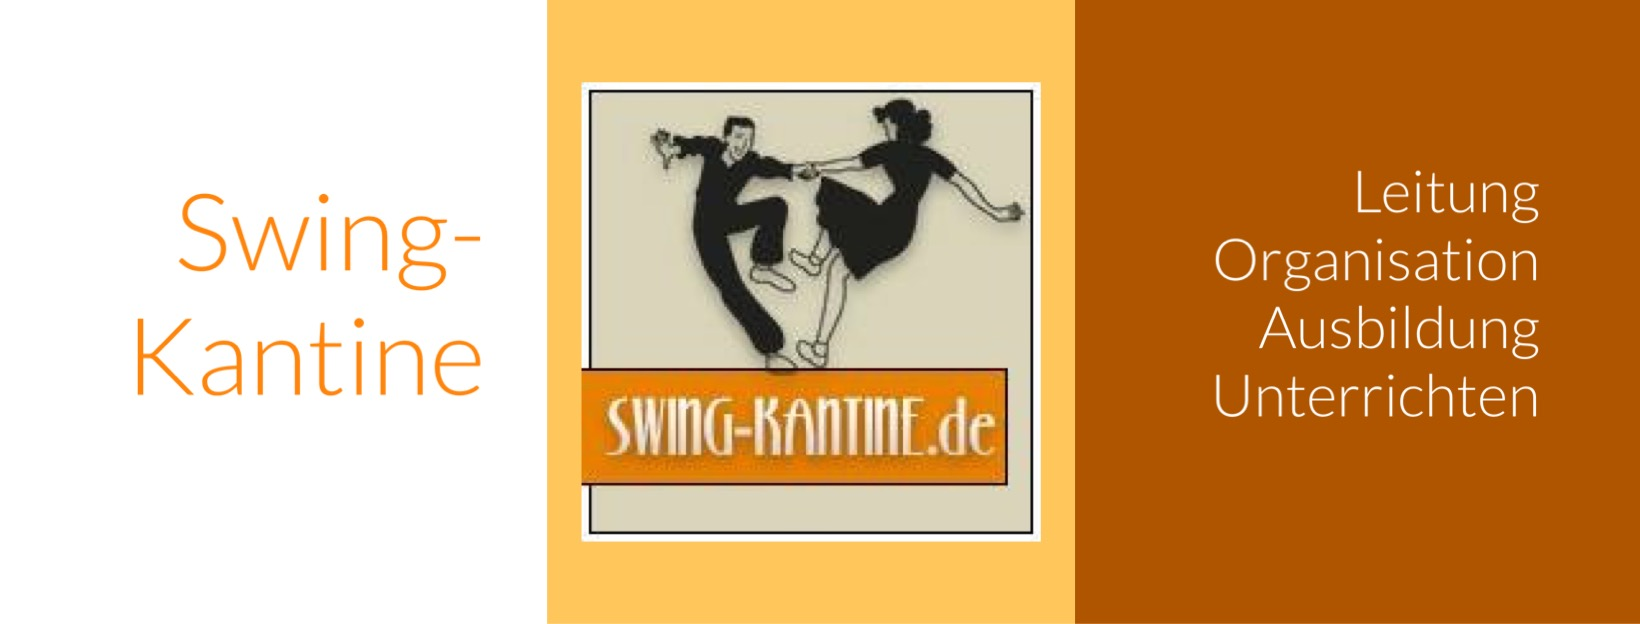 swing kantine on dancefloor